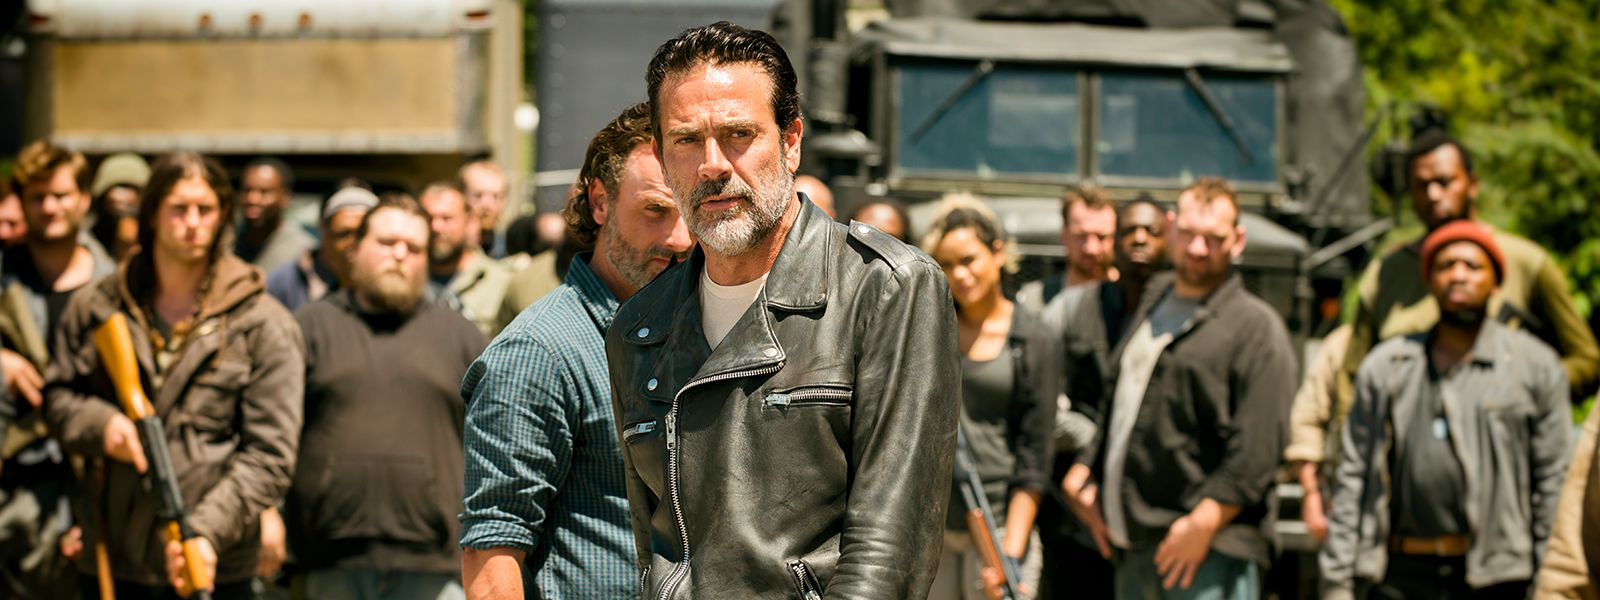 the-walking-dead-episode-704-negan-morgan-rick-lincoln-post-800×600